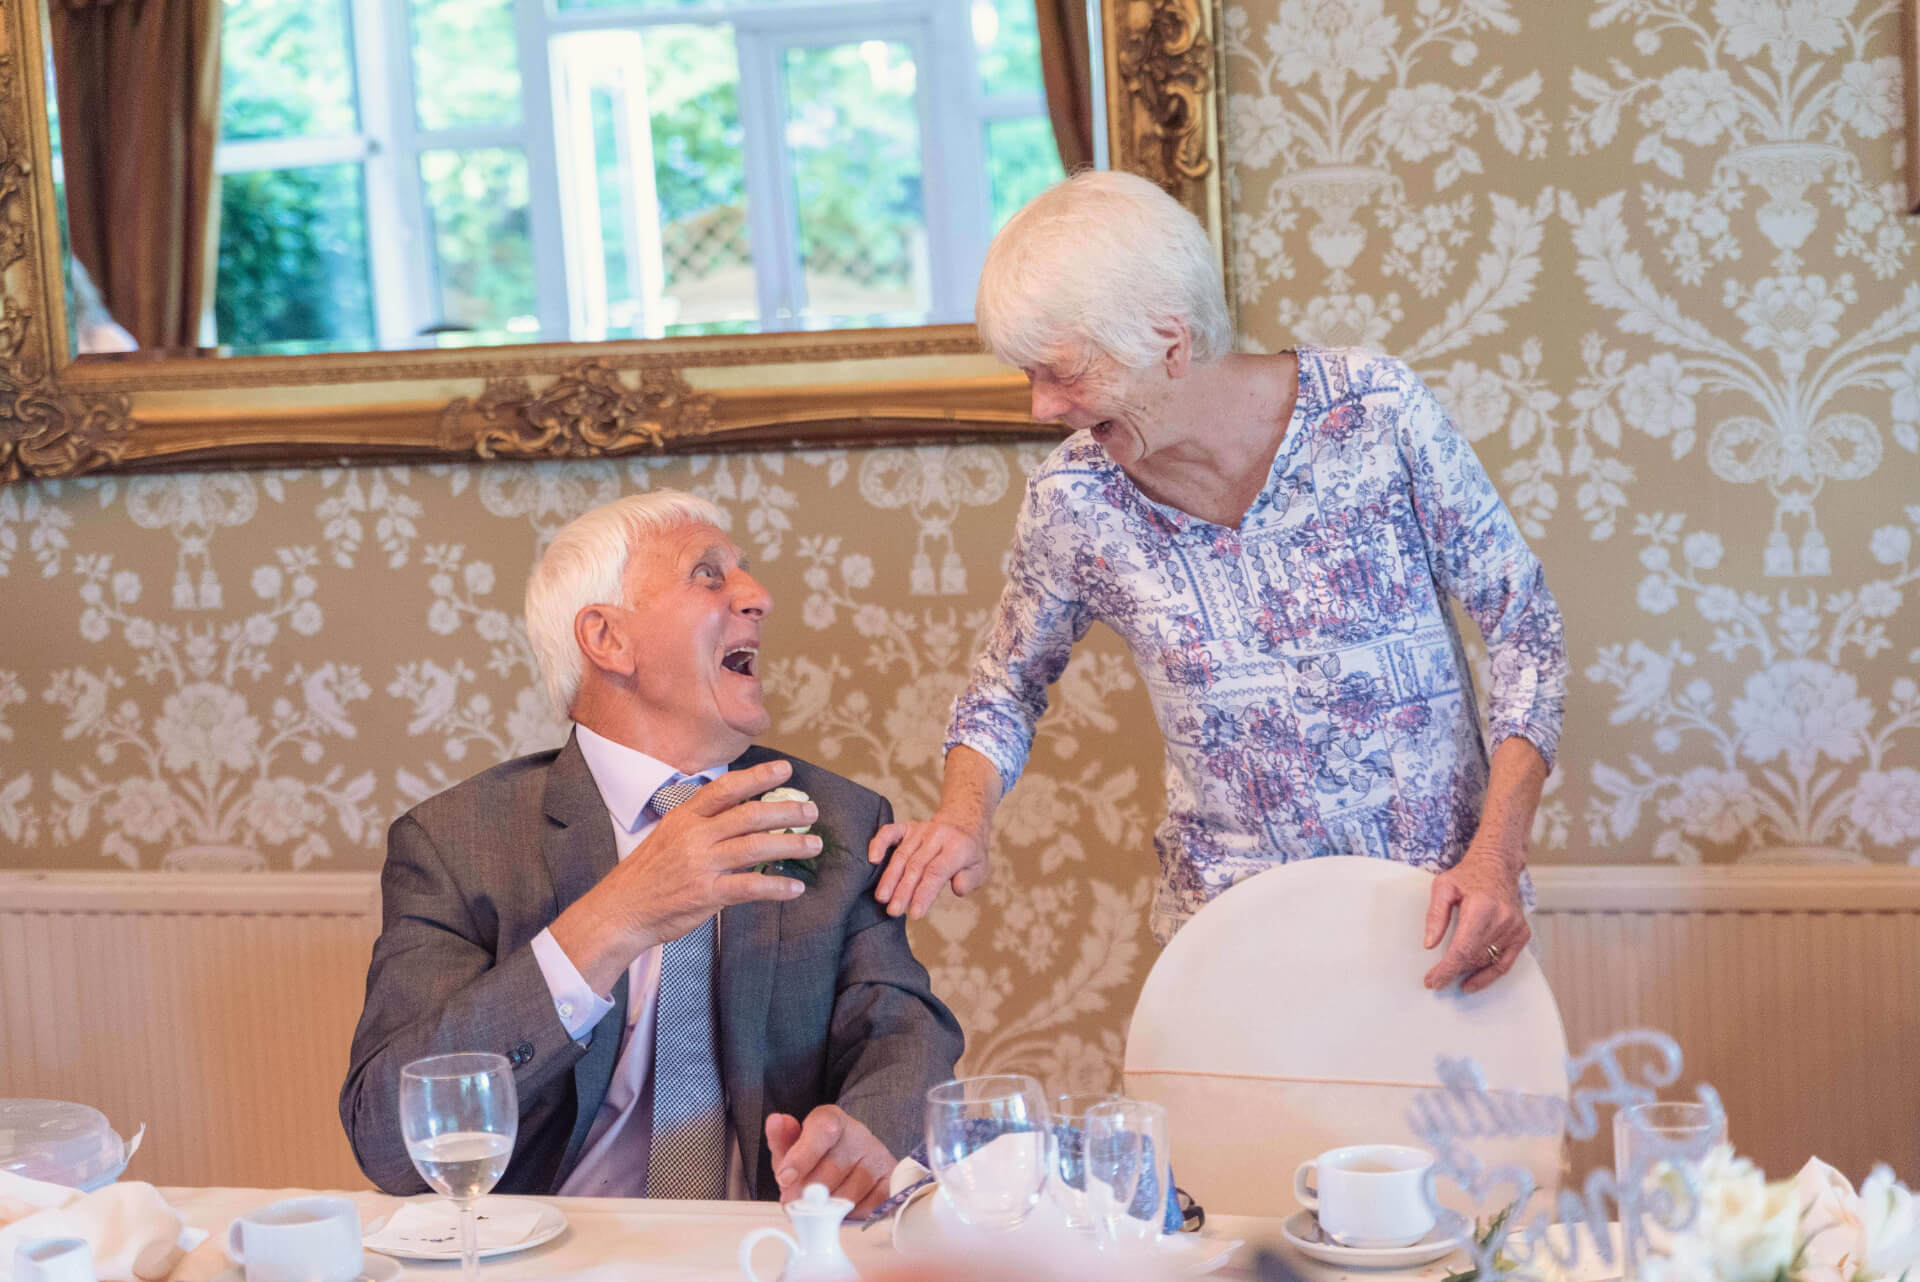 Guests laughing during the wedding reception